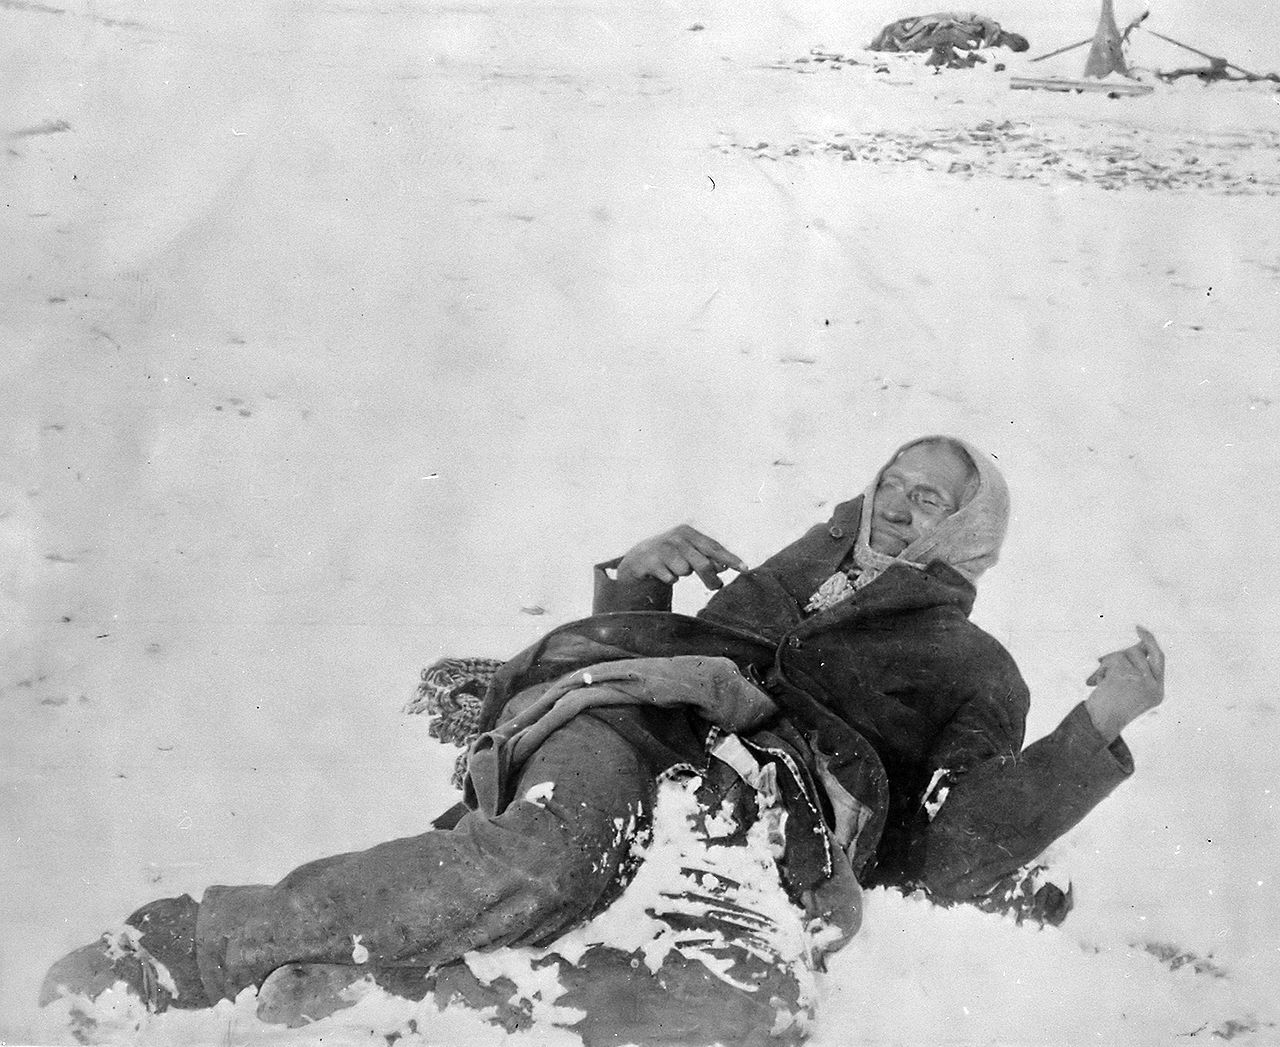 a history of the wounded knee massacre in the united states On the anniversary of the wounded knee massacre, look back at the last major confrontation in the long war between the united states and native american tribes from the great plains dec 28, 2015 remembering the wounded knee massacre.